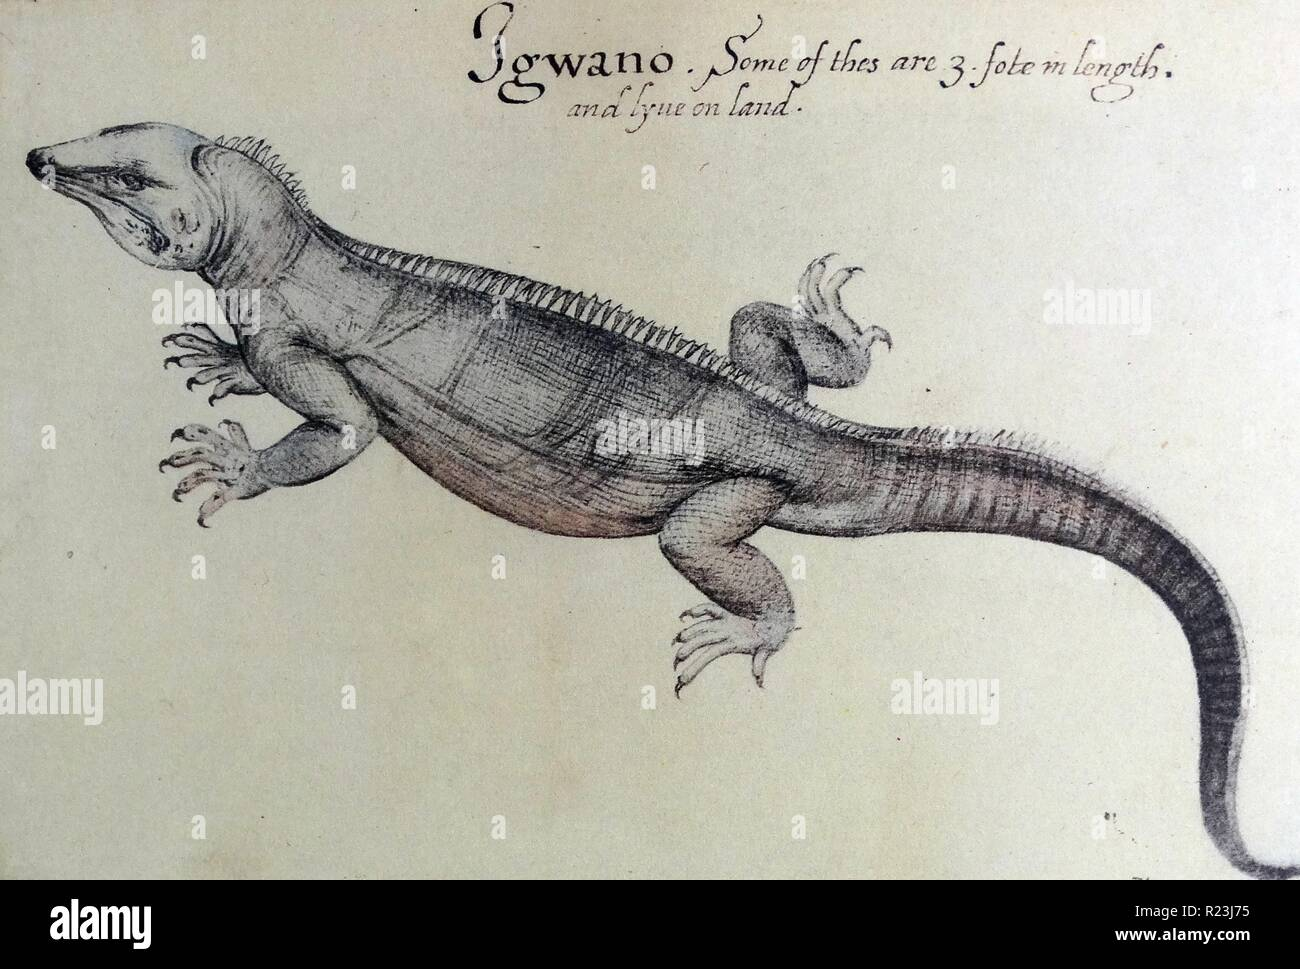 watercolour of an Iguana by John White (created 1585-1586). - Stock Image